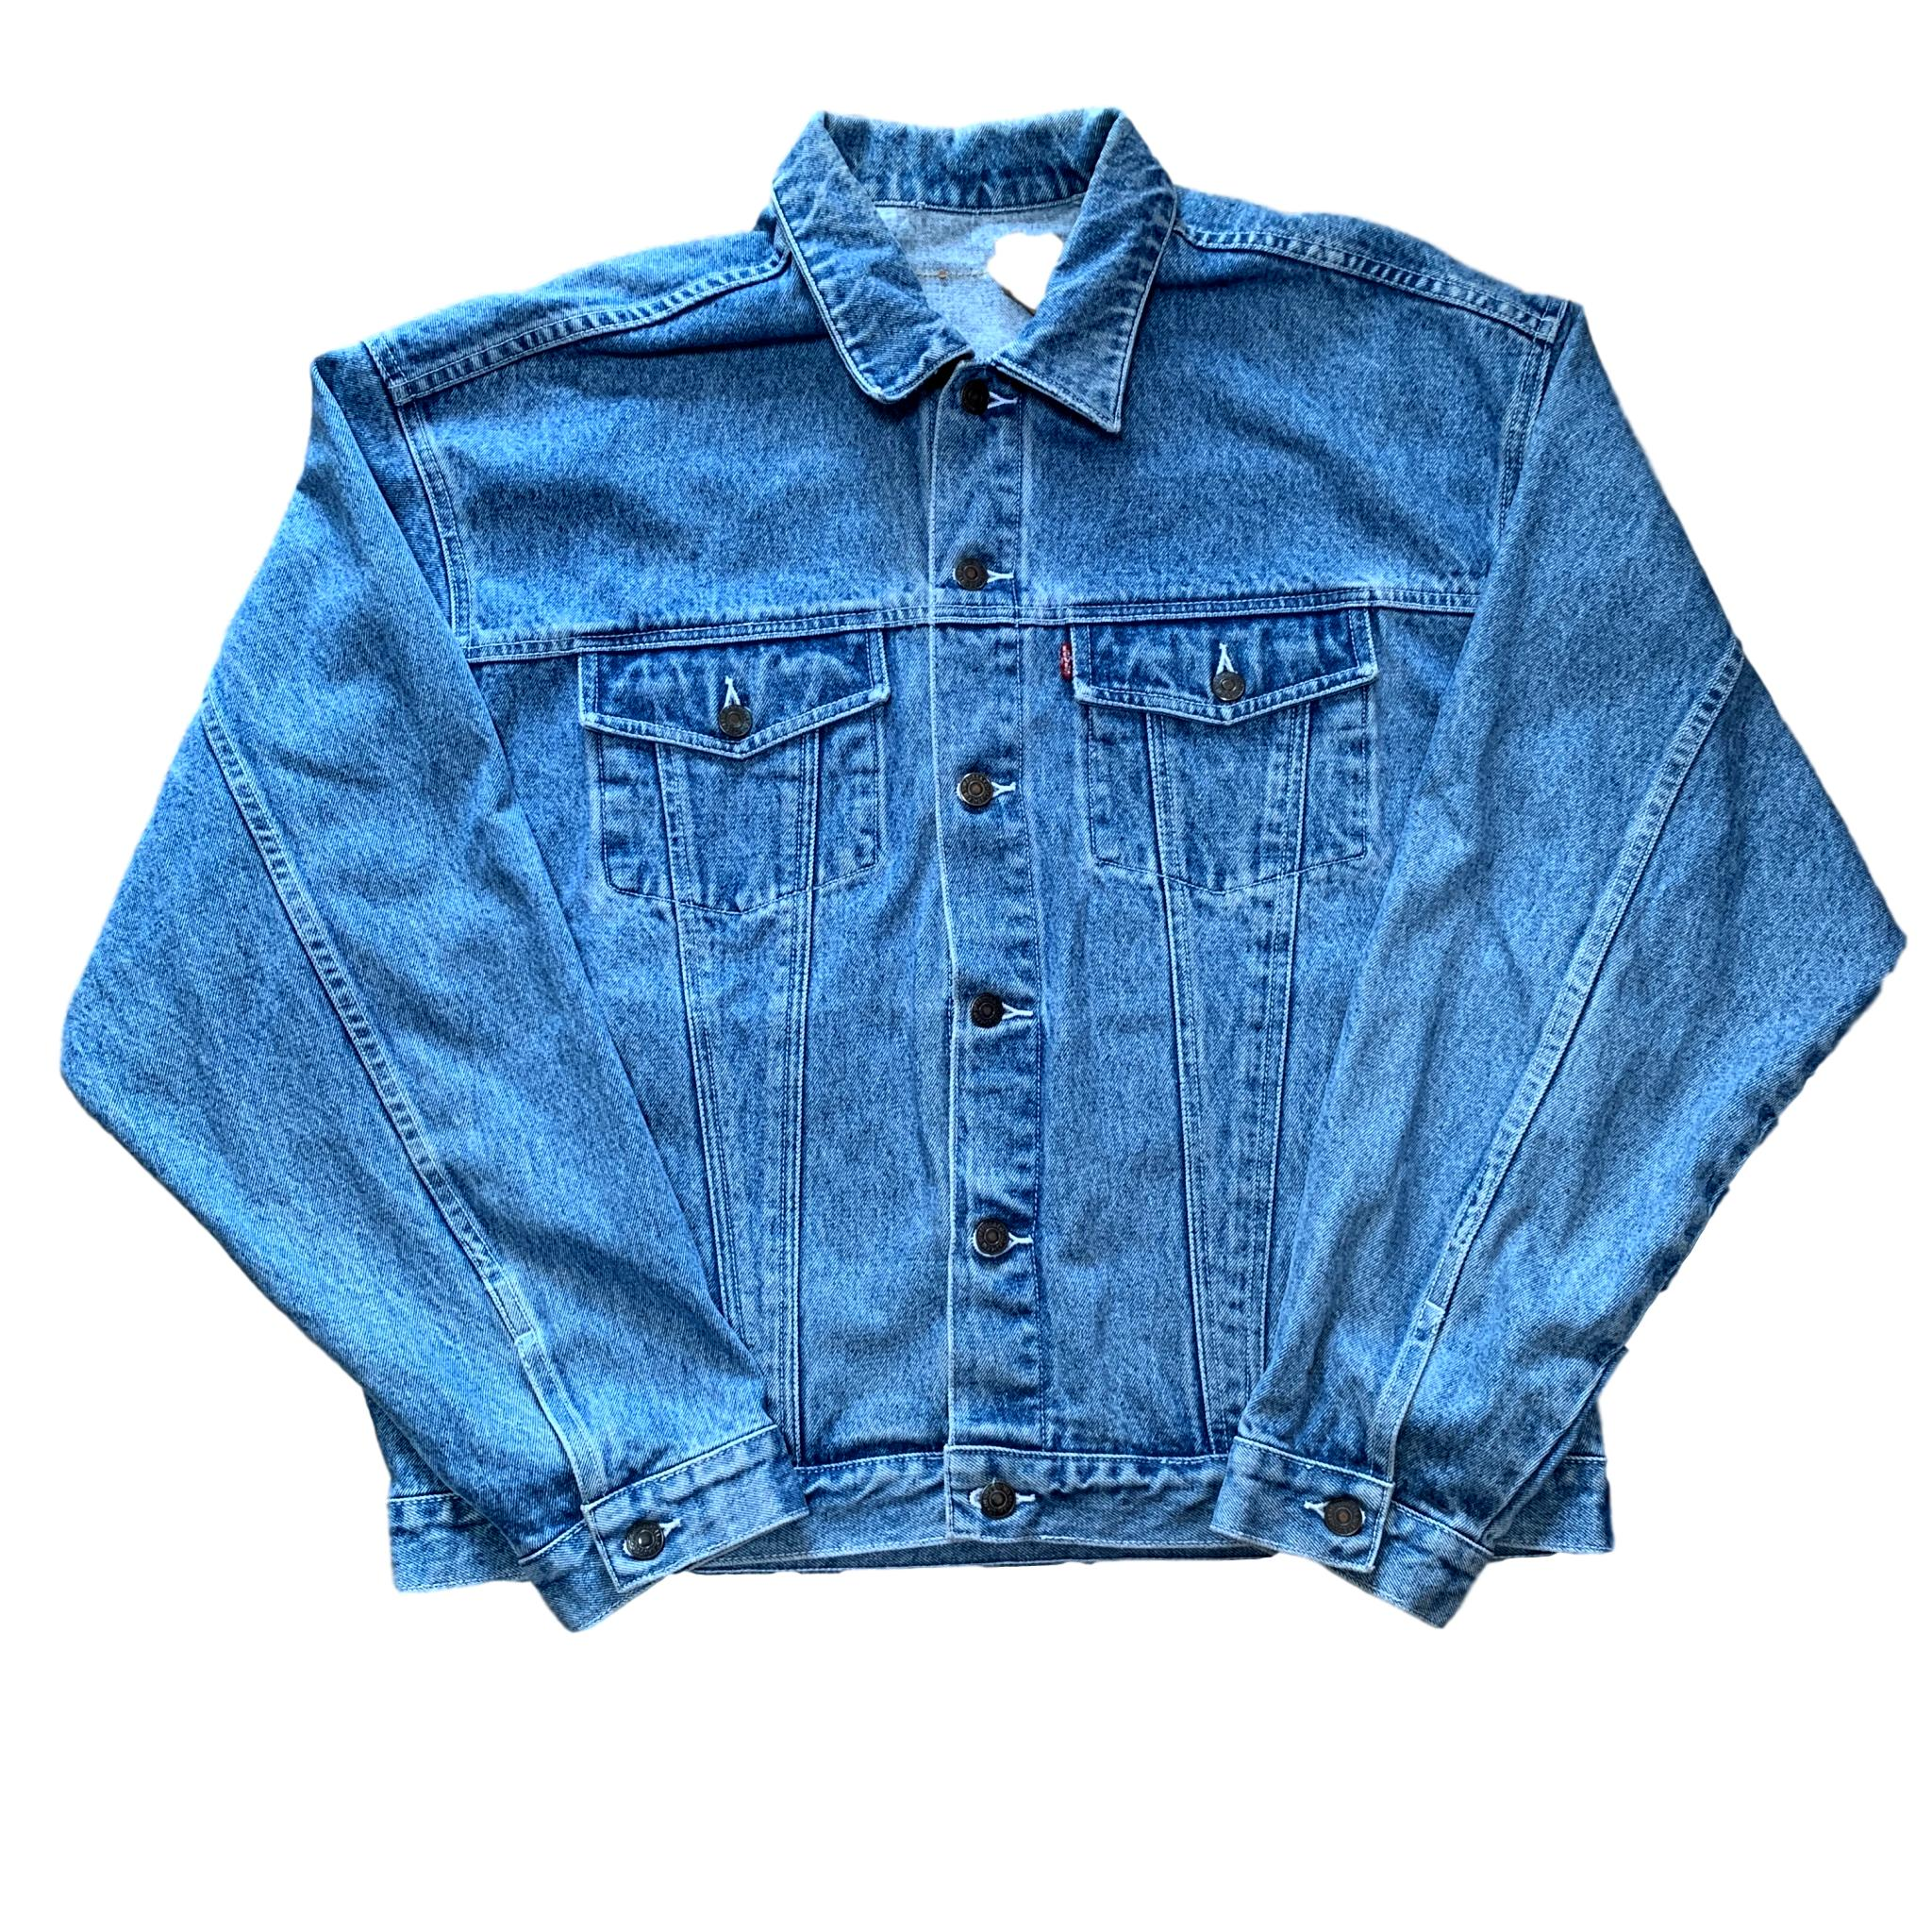 Vintage Levi's Disney Denim Jacket (L)